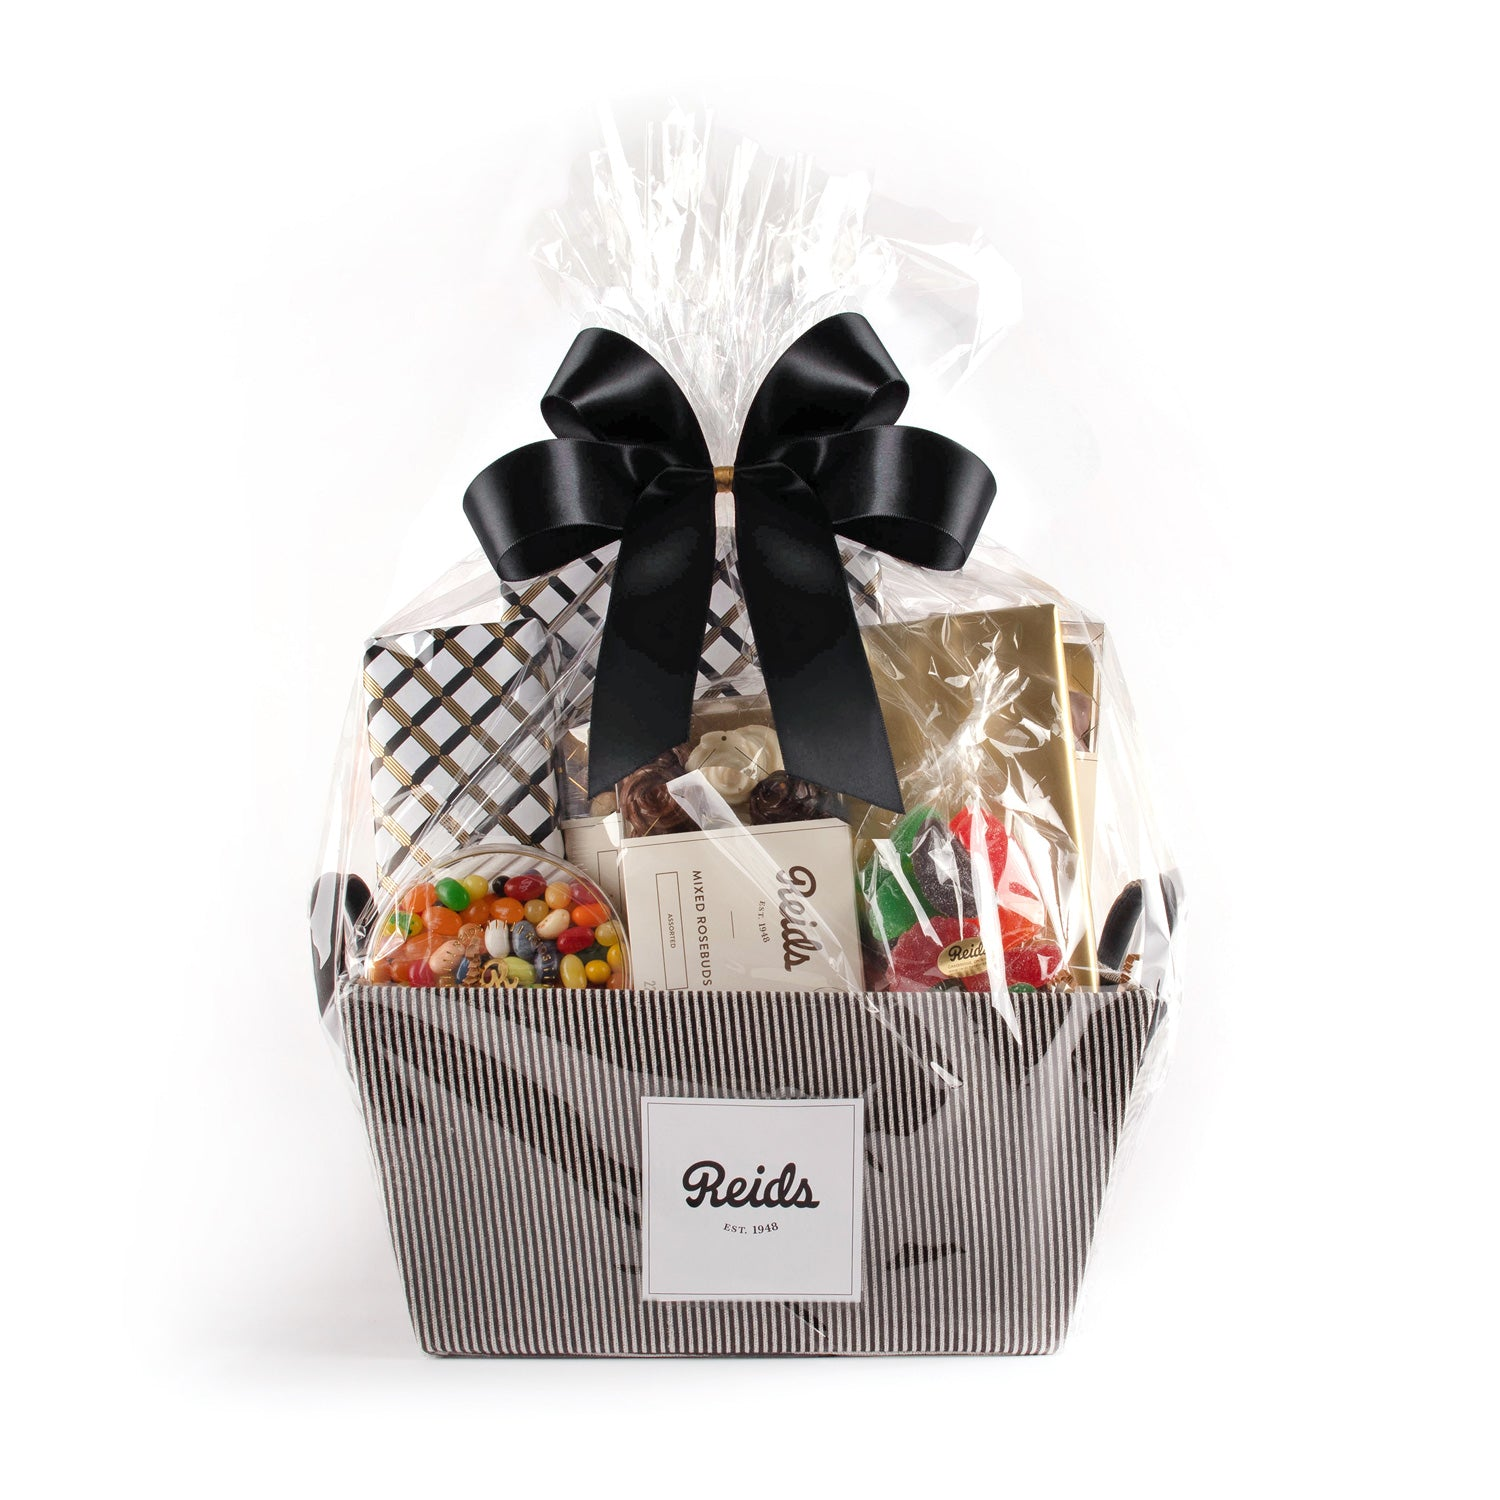 The large basket comes in a black and white pinstriped basket wrapped in cellophane and tied with a bow